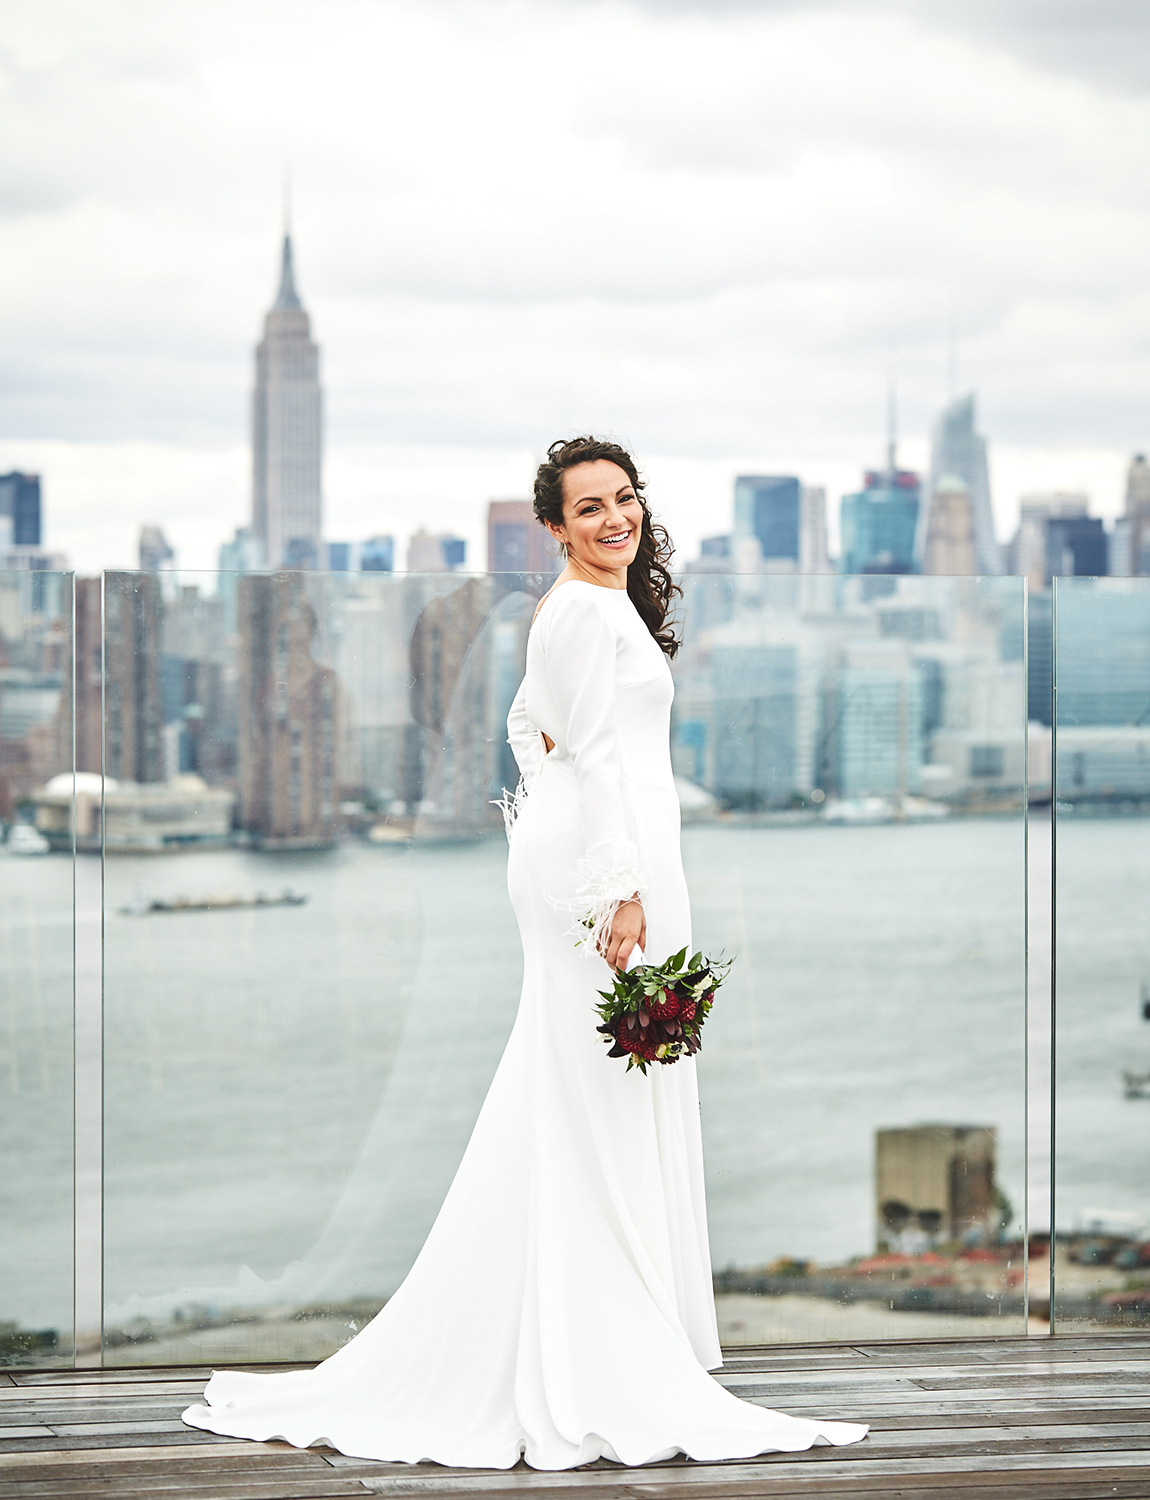 170930_WilliamValeWeddingPhotography_BrooklynWeddingPhotographer_By_BriJohnsonWeddings_0057.jpg